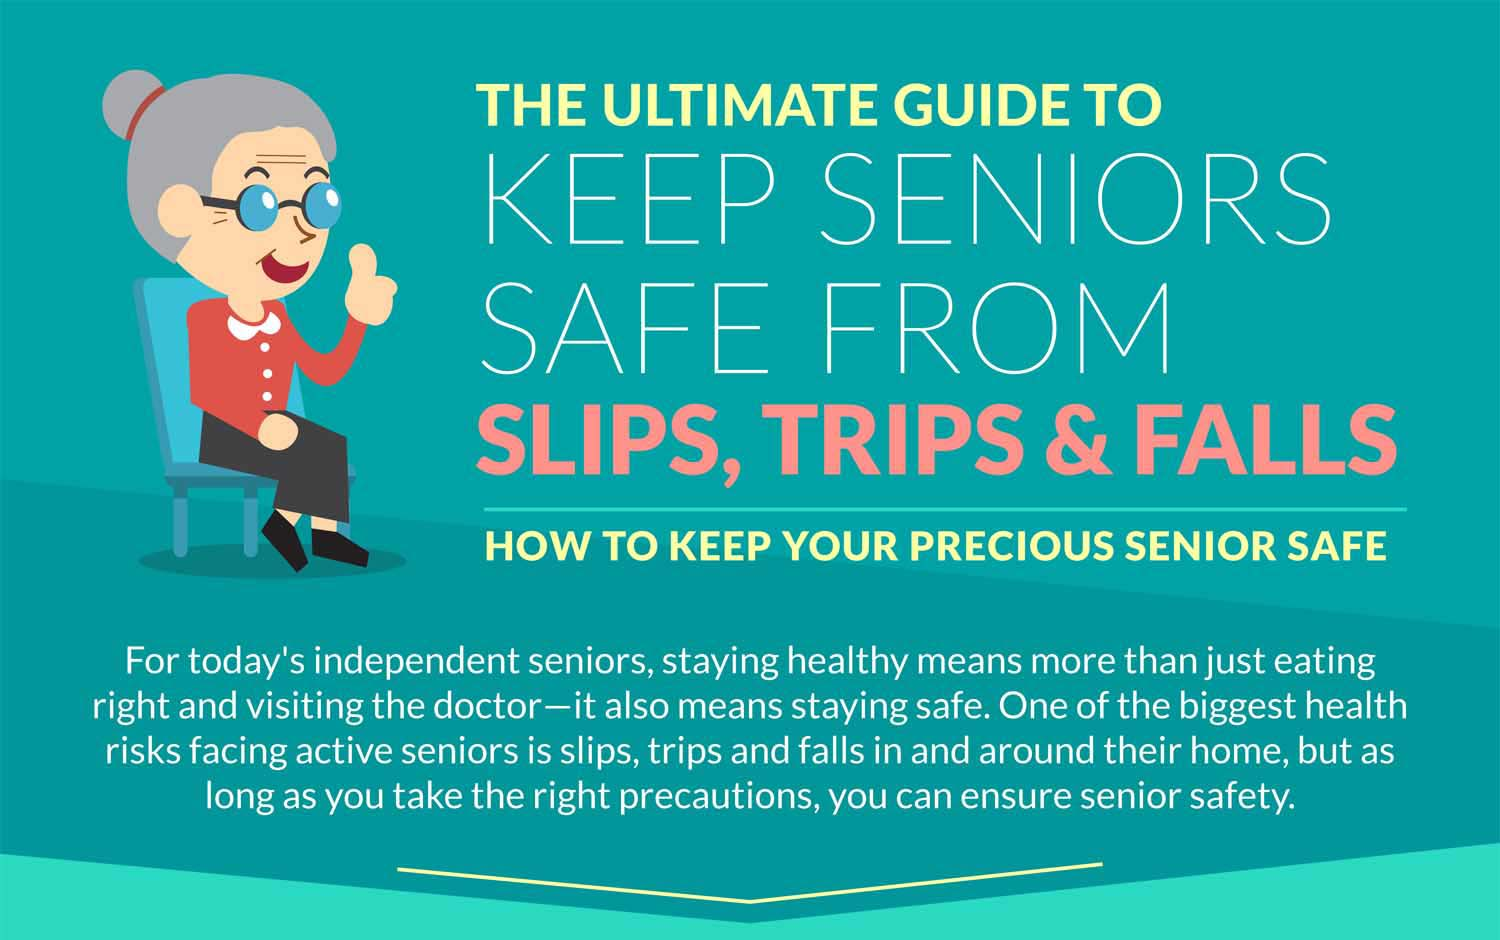 Keep Seniors Safe From Slips, Trips & Falls